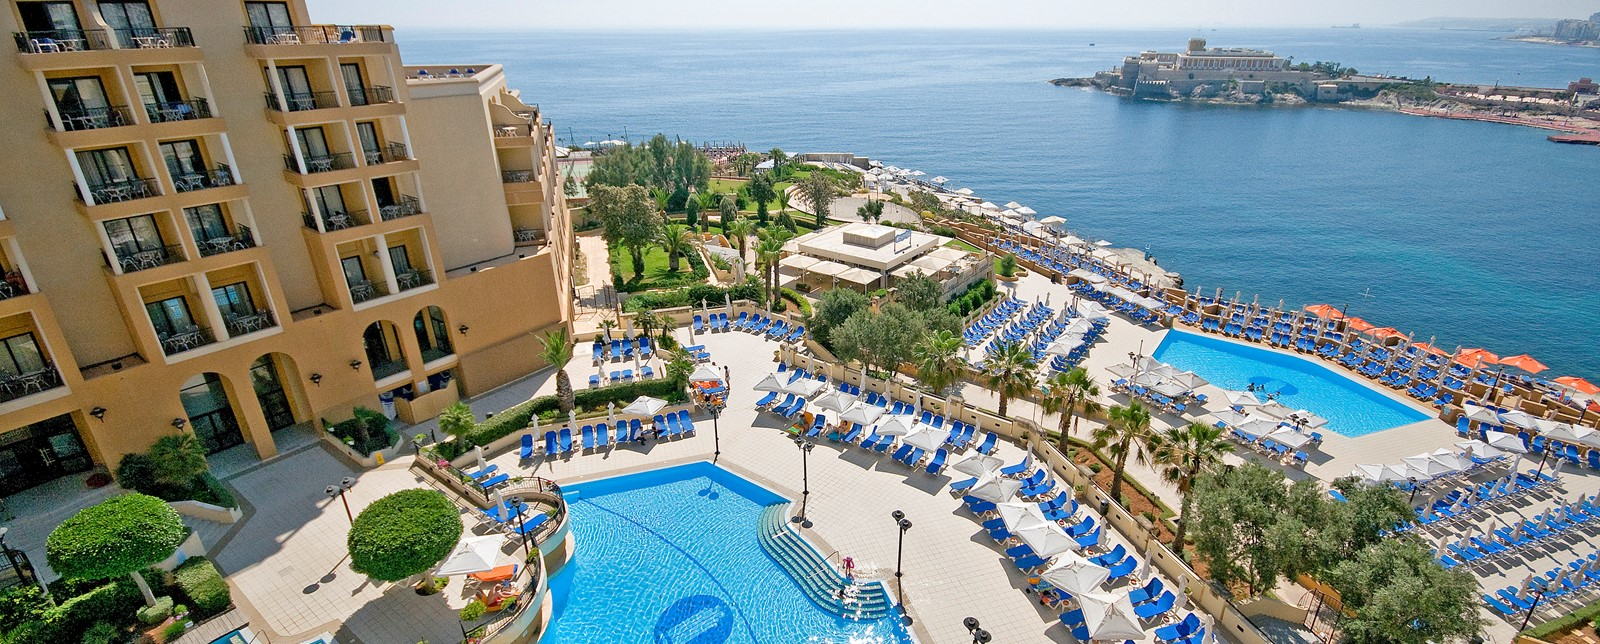 Outdoor Venue Malta Pool